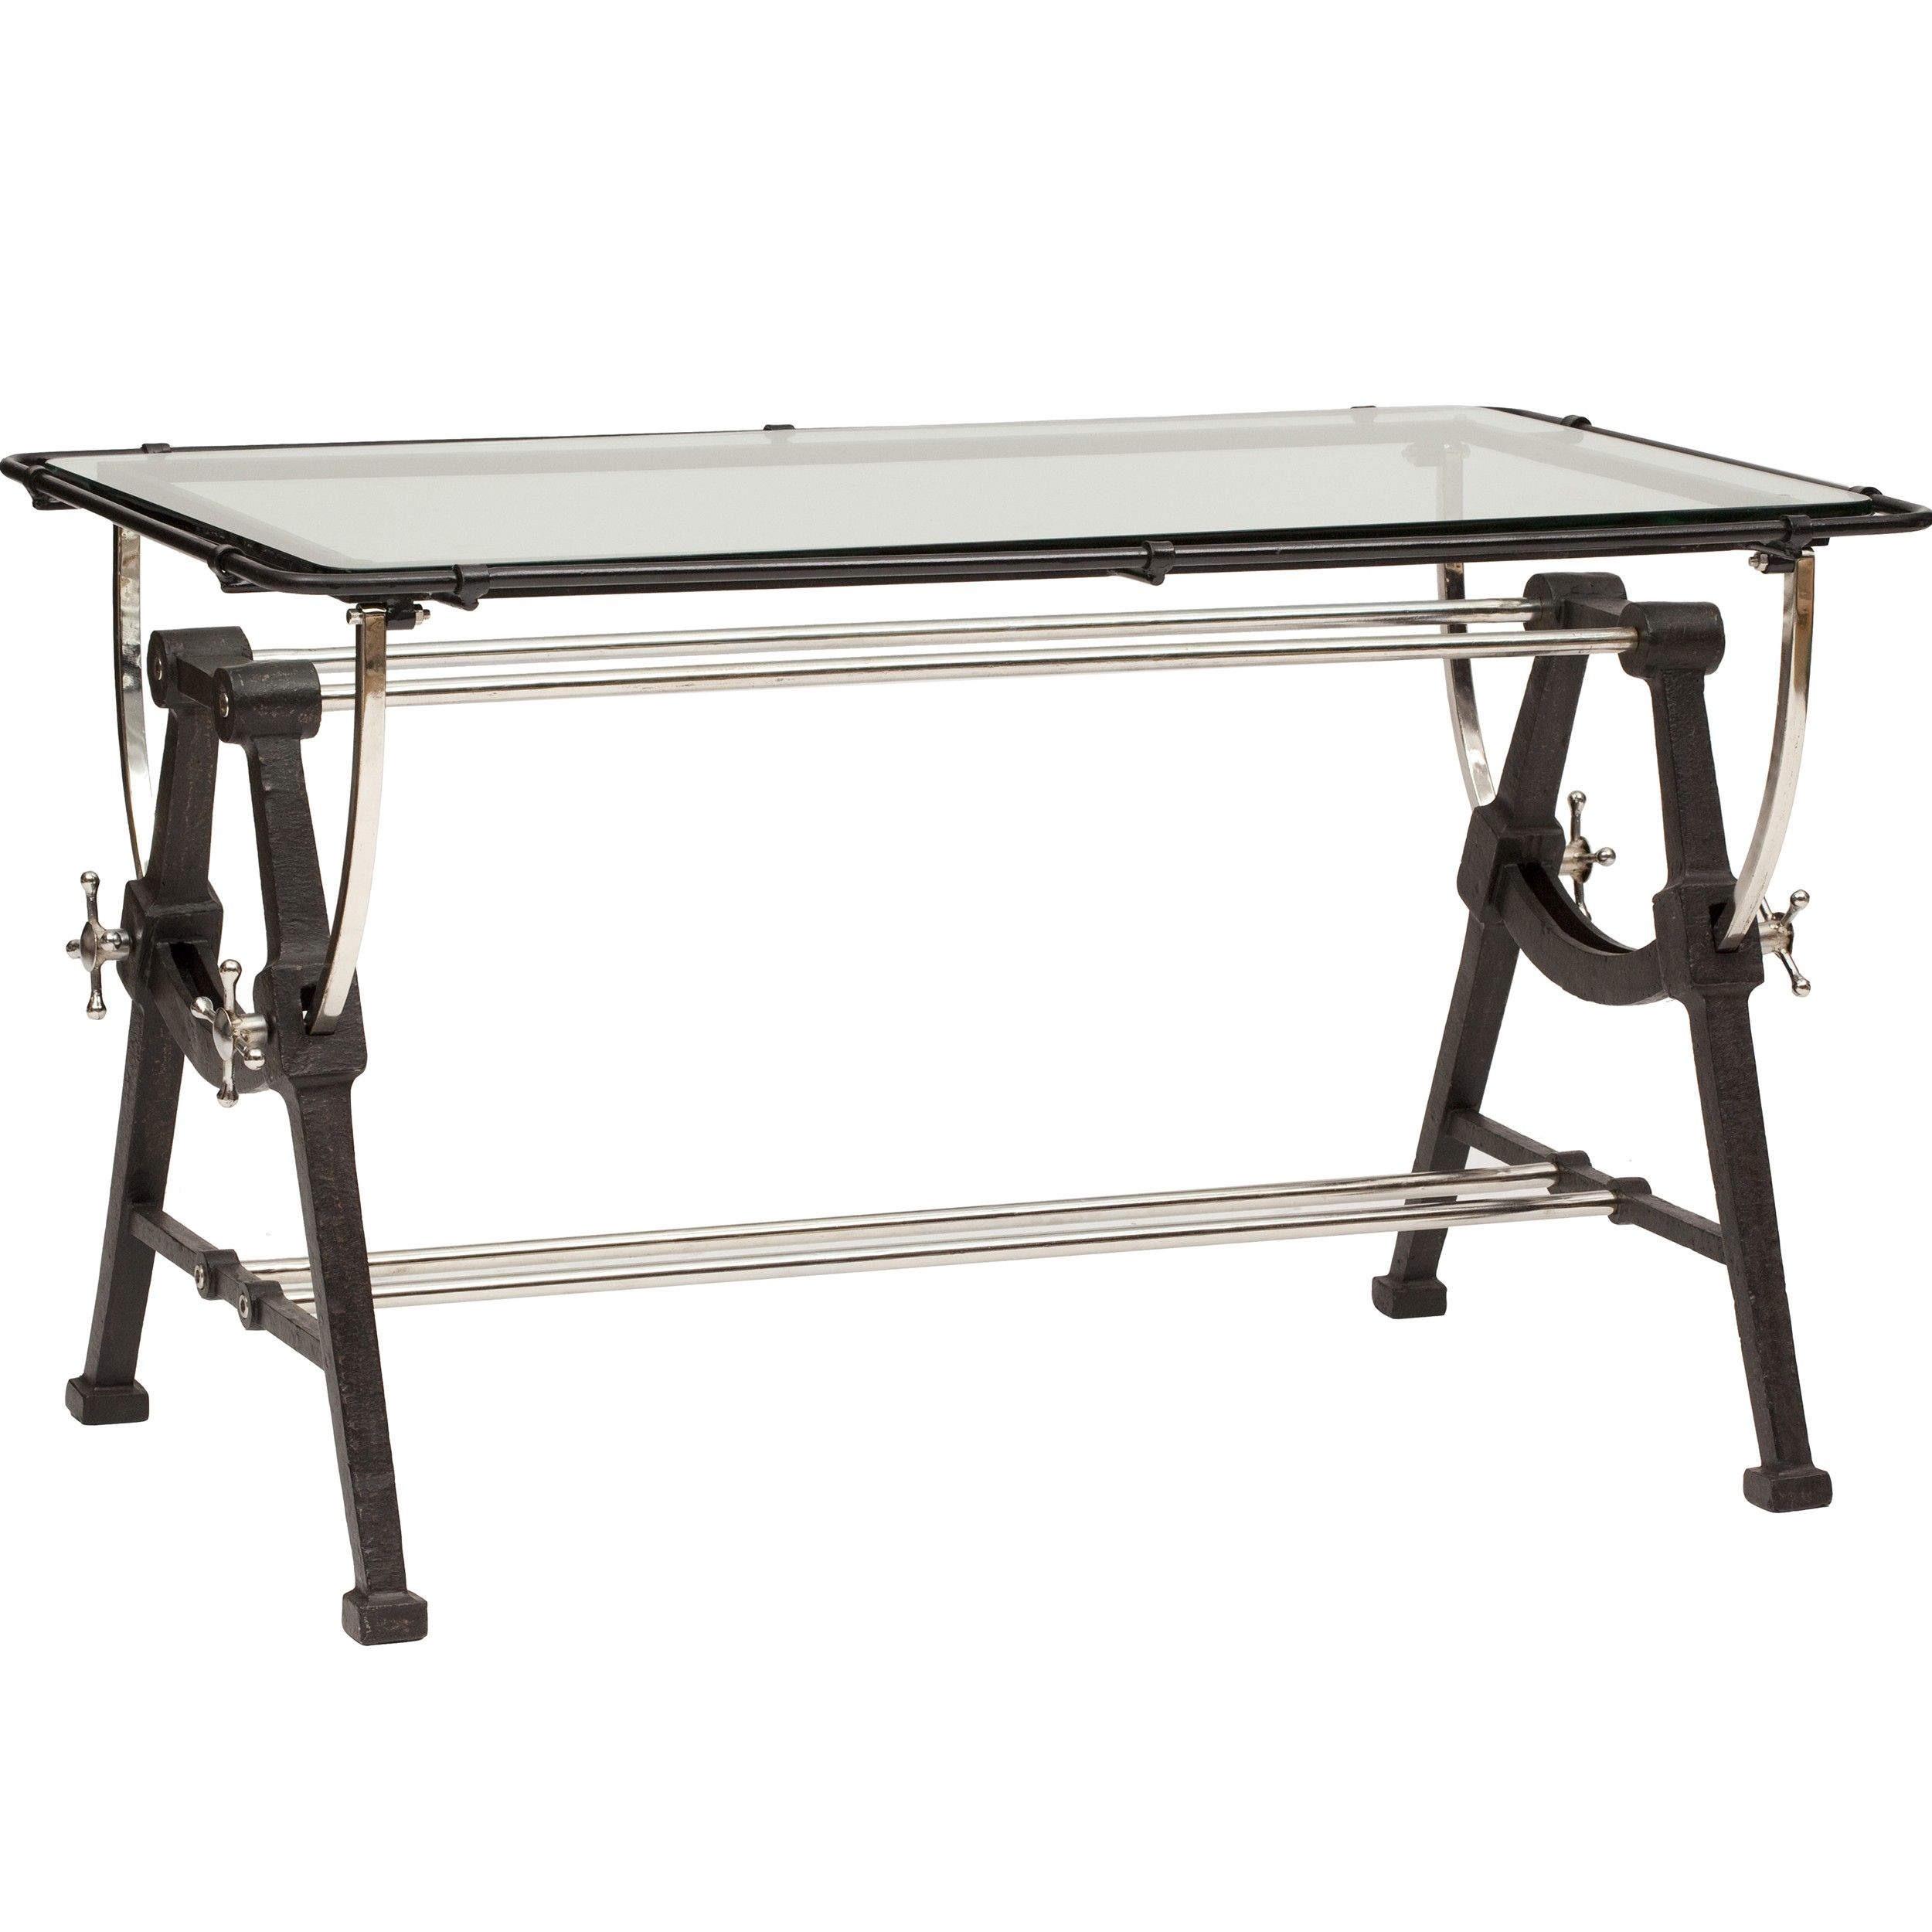 nautical office furniture. Nautical Table Desk $1,579.00 Office Furniture G